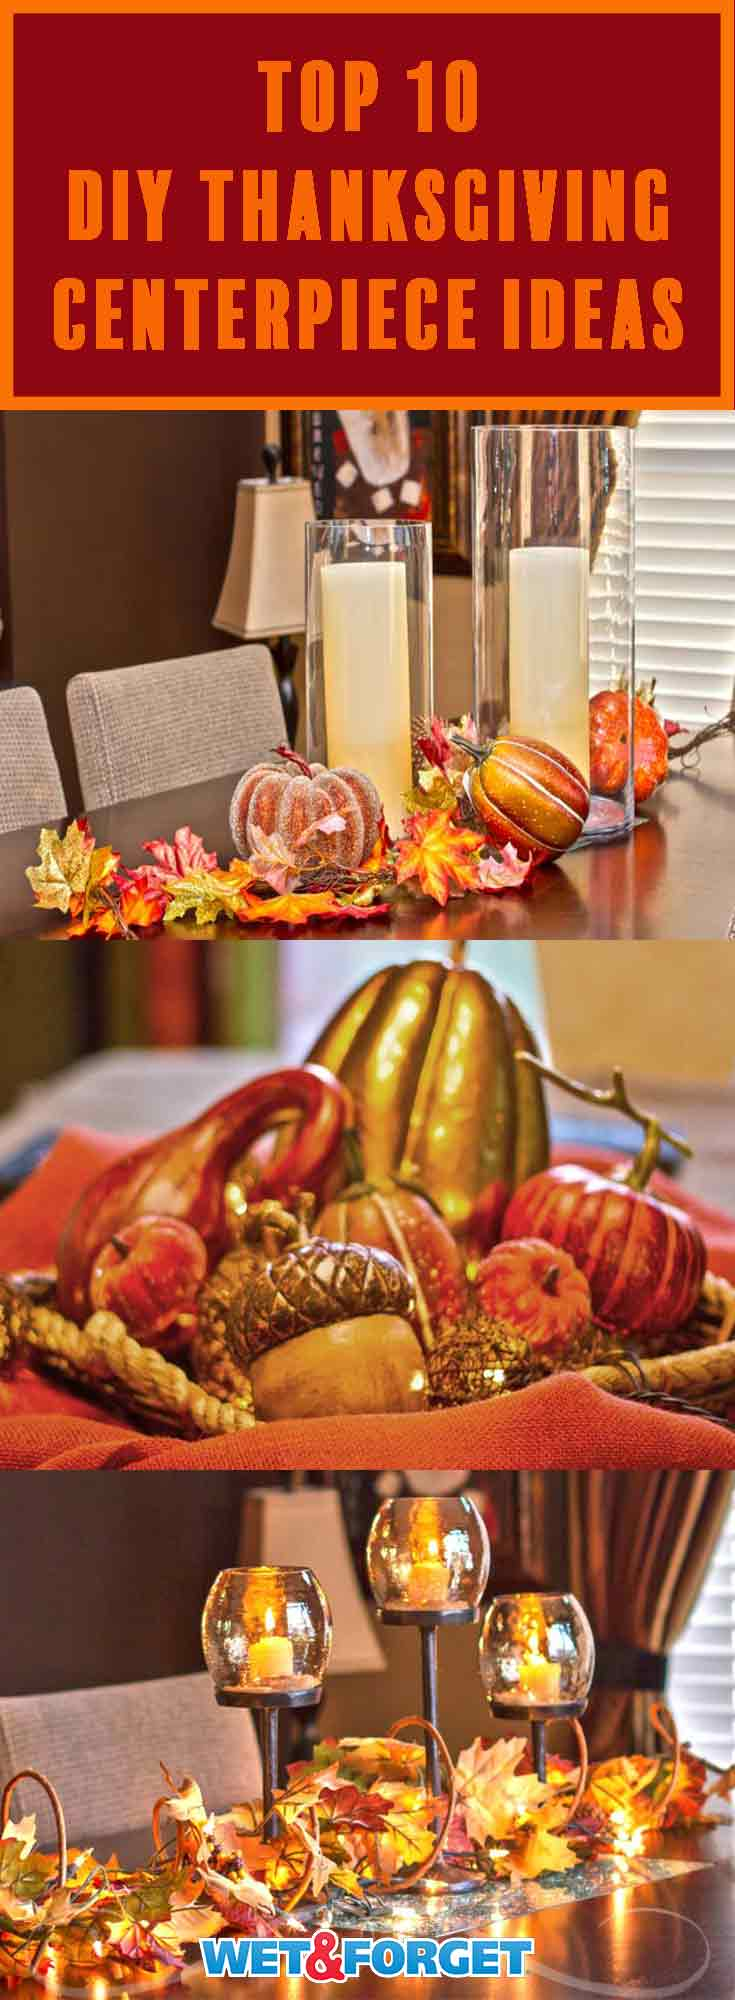 Thanksgiving is right around the corner! Add the perfect finishing touch to your table with one of our easy DIY centerpiece ideas!